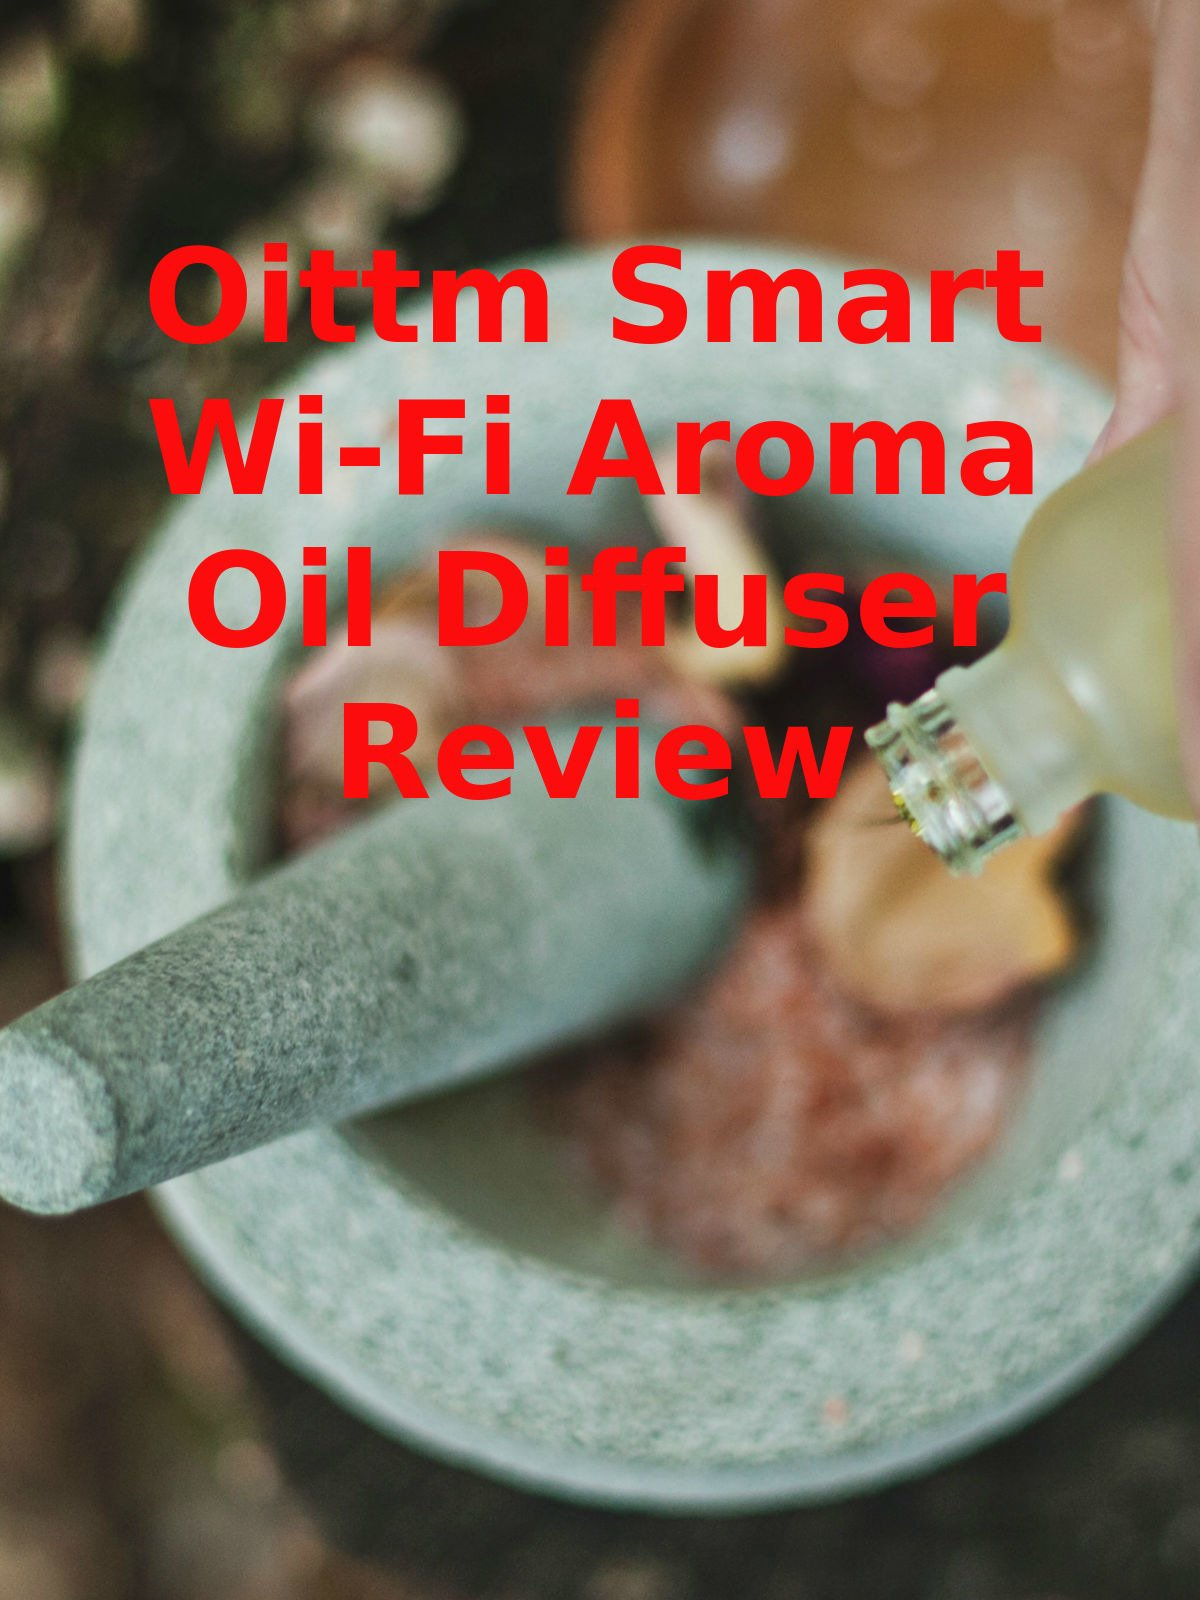 Review: Oittm Smart Wi-Fi Aroma Oil Diffuser Review